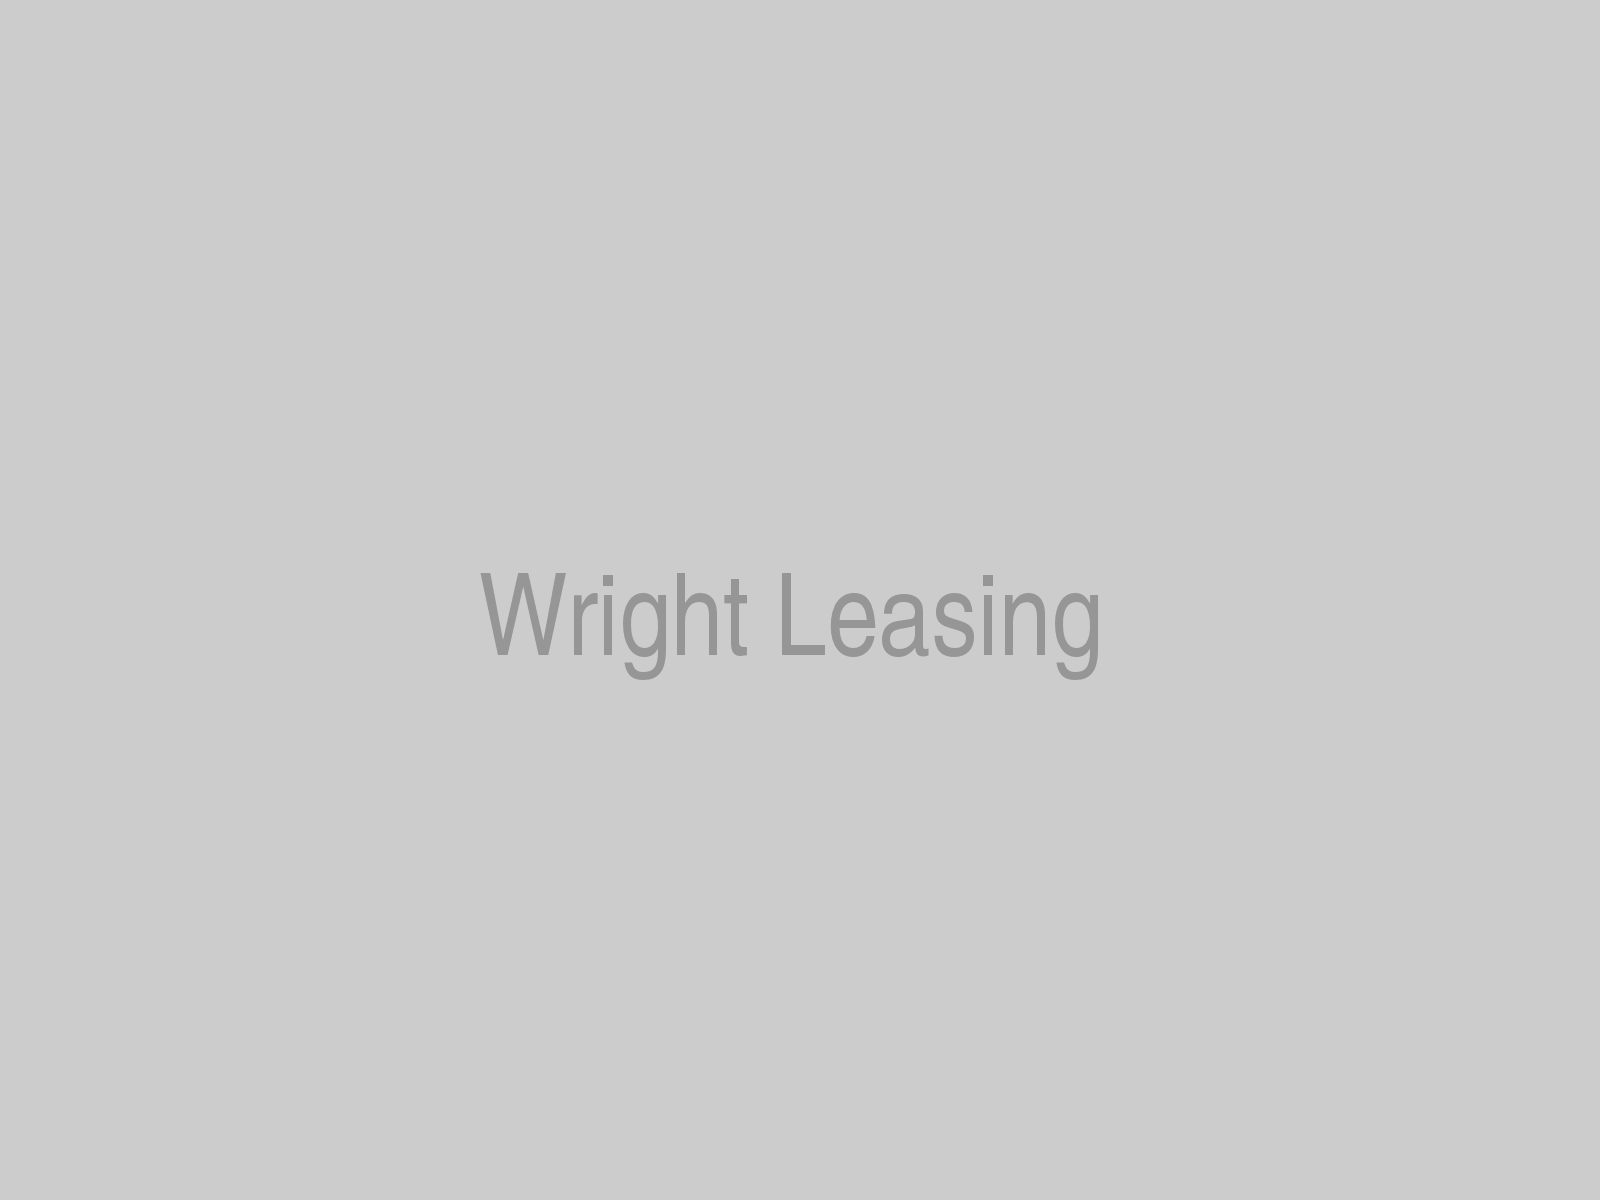 Wright Leasing